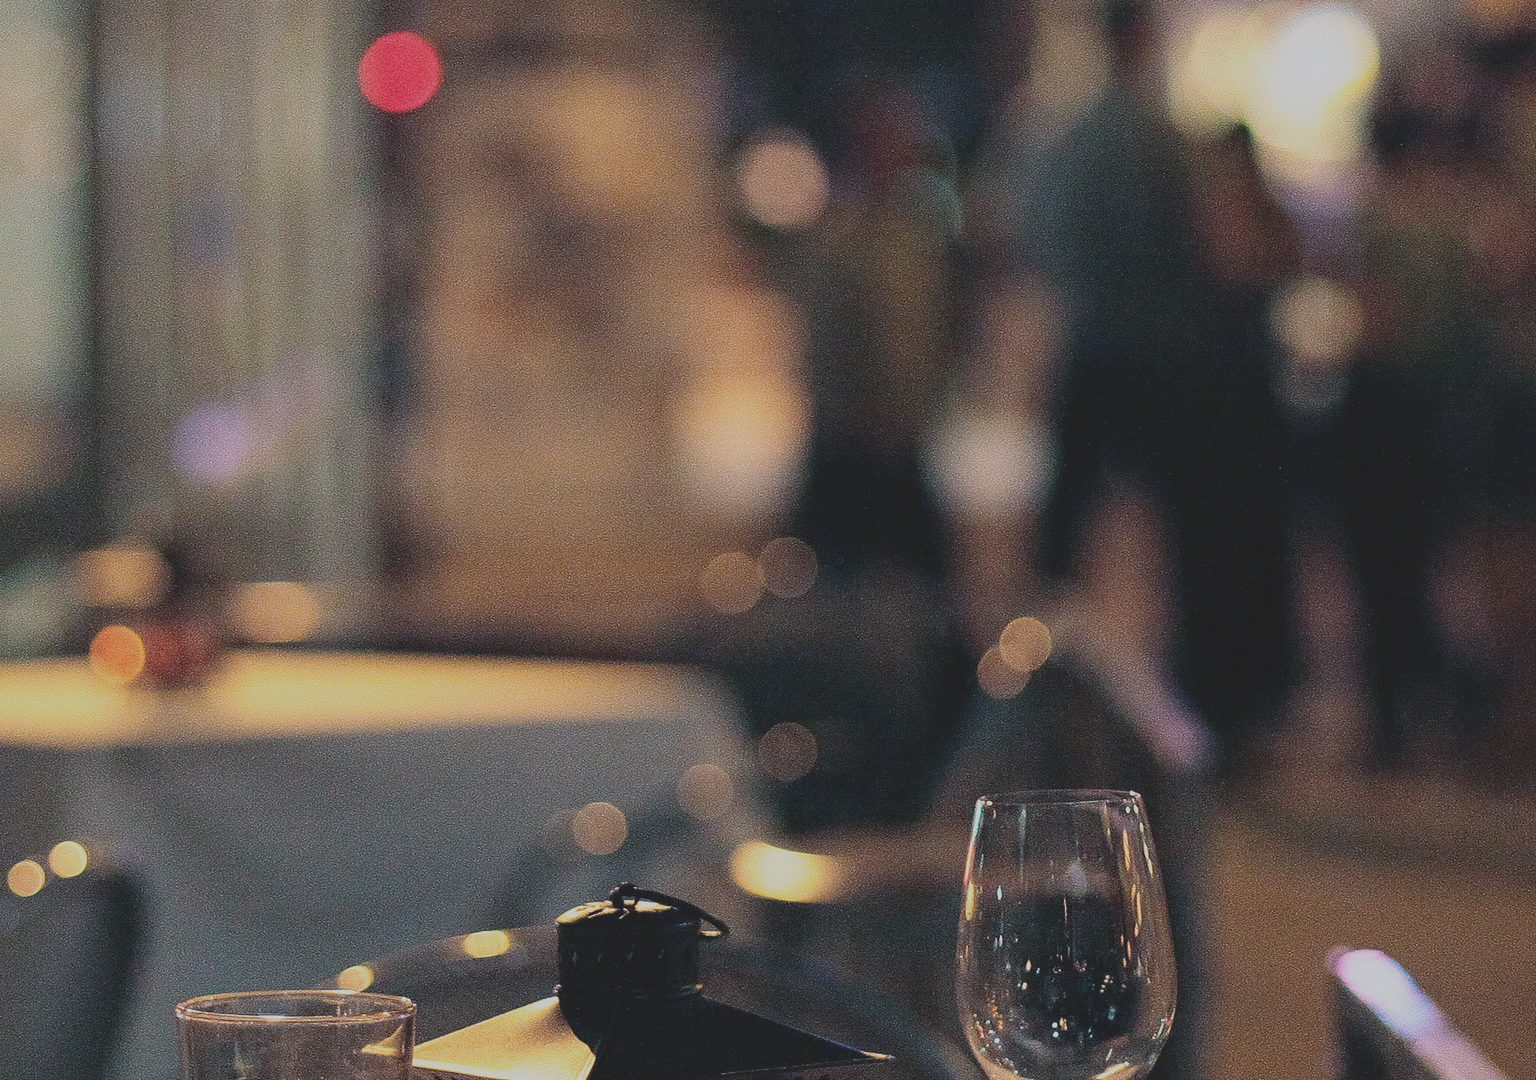 Restaurant table outdoors at nighttime with lantern and wine and water glasses in foreground, bus stop and people on sidewalk can be seen in background